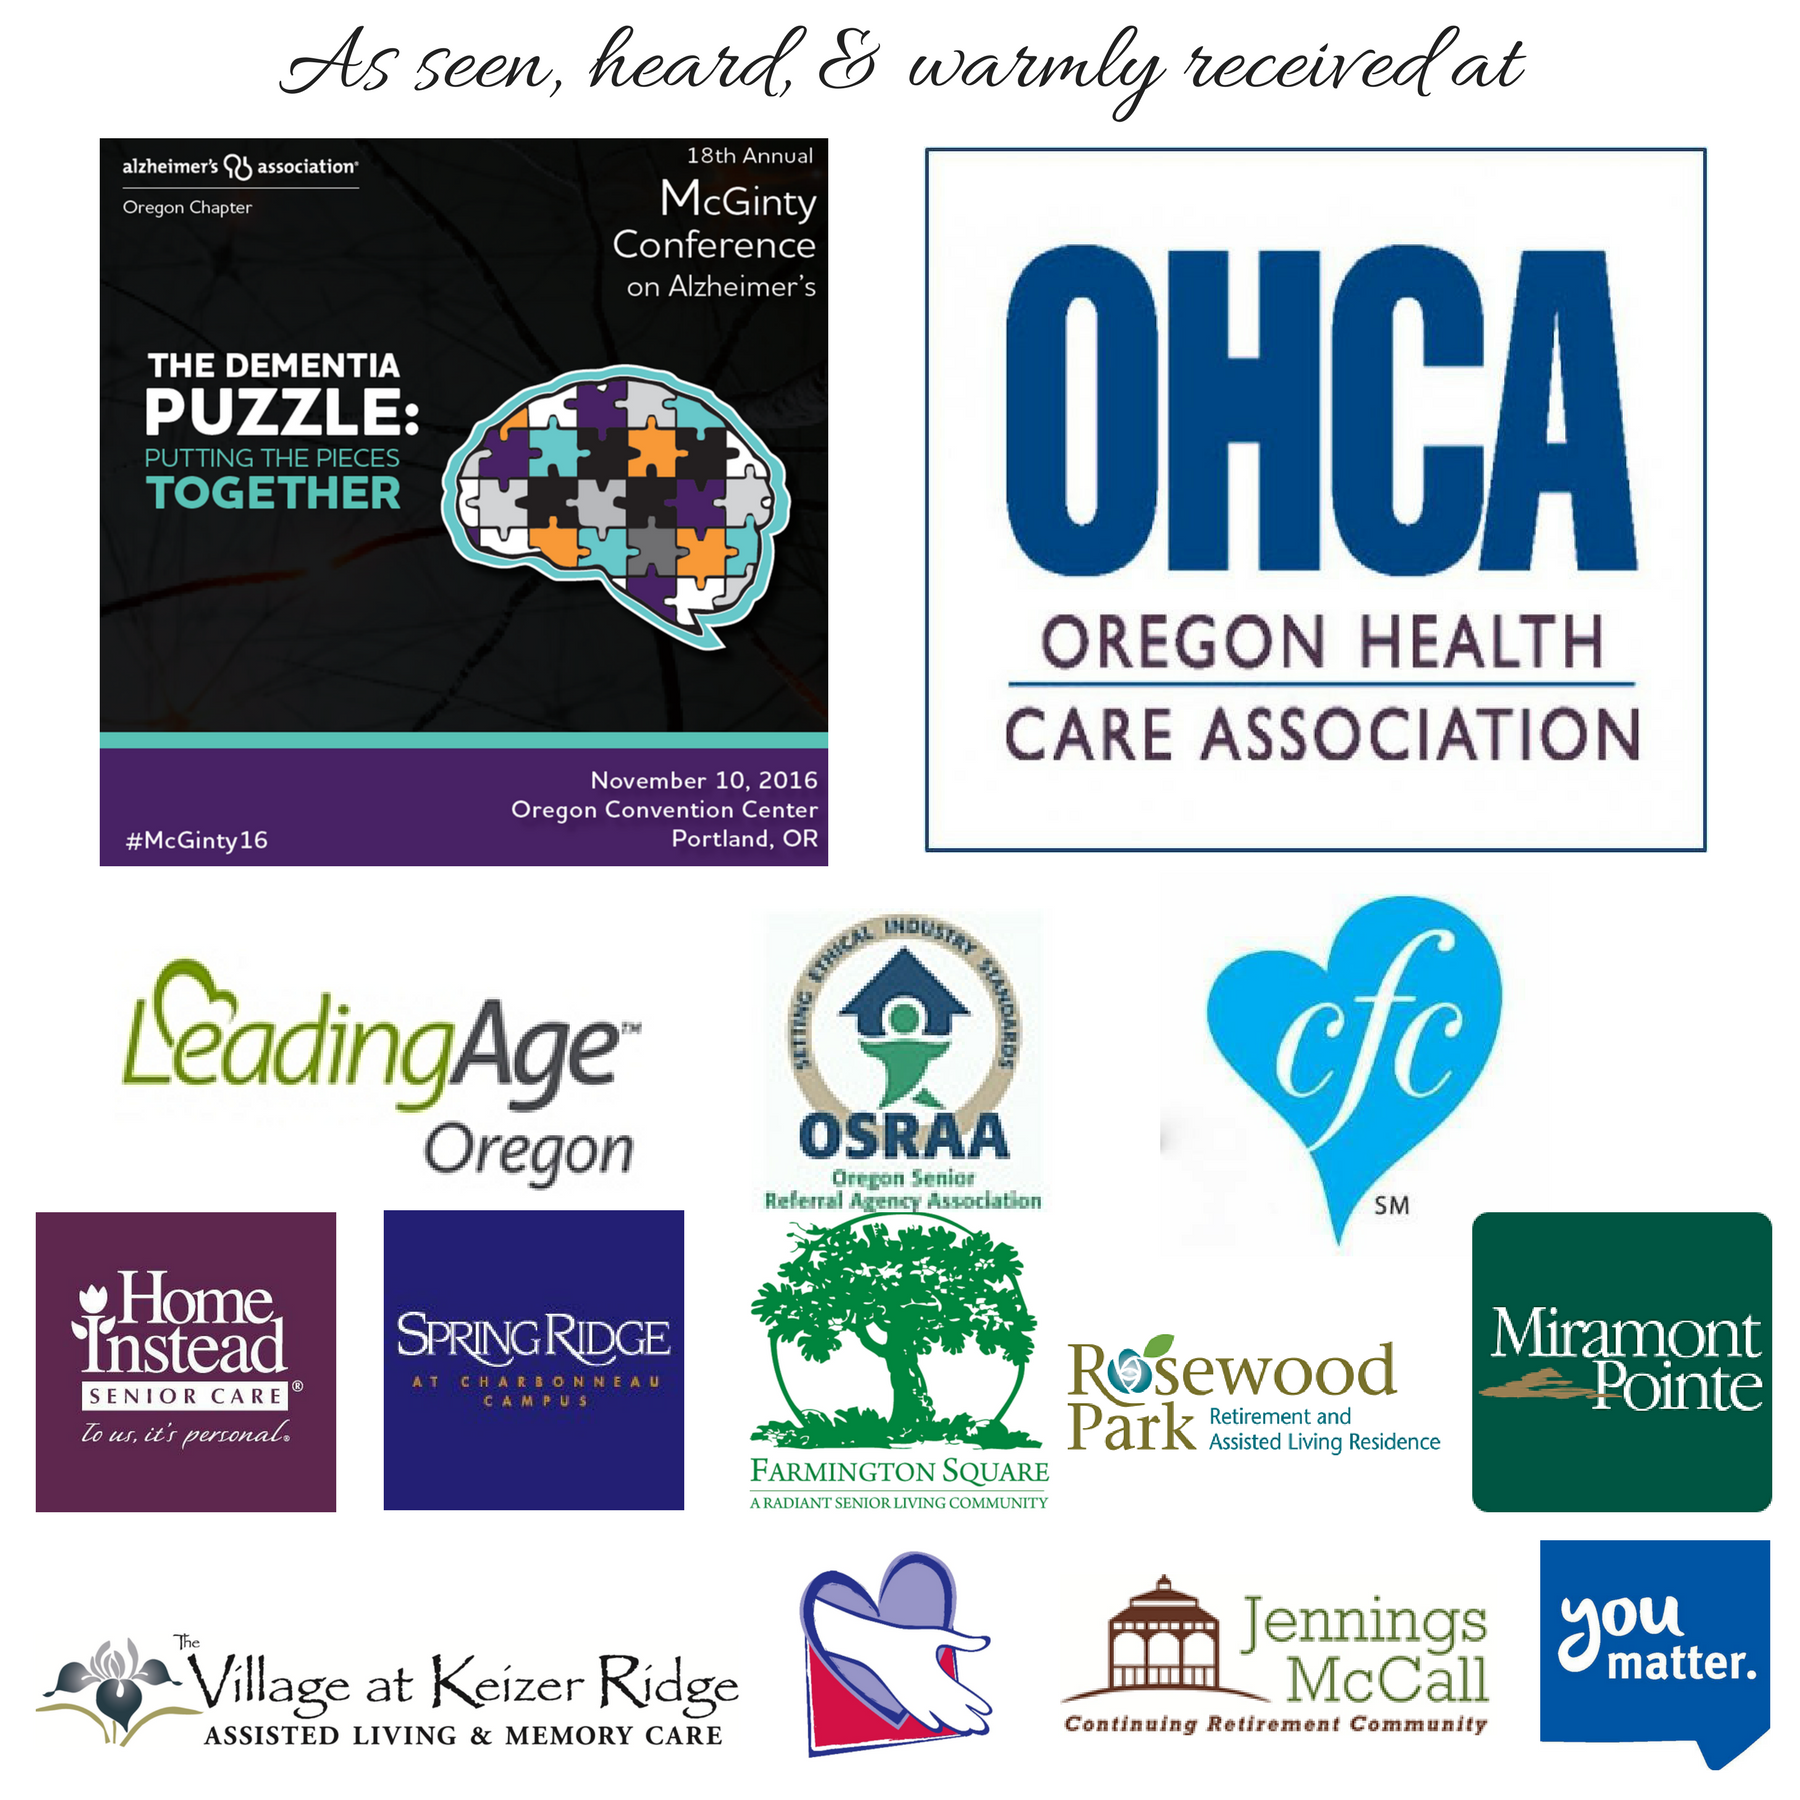 logos of Alzheimer's Association McGinty Conference, OHCA, Leading Age Oregon, OSRAA, ComForcare, Home Instead, SpringRidge, Farmington Square, Rosewood Park, Miramont Pointe, Village at Keizer Ridge, Helping Hand Home Care, Jennings McCall Center, and Salem Health